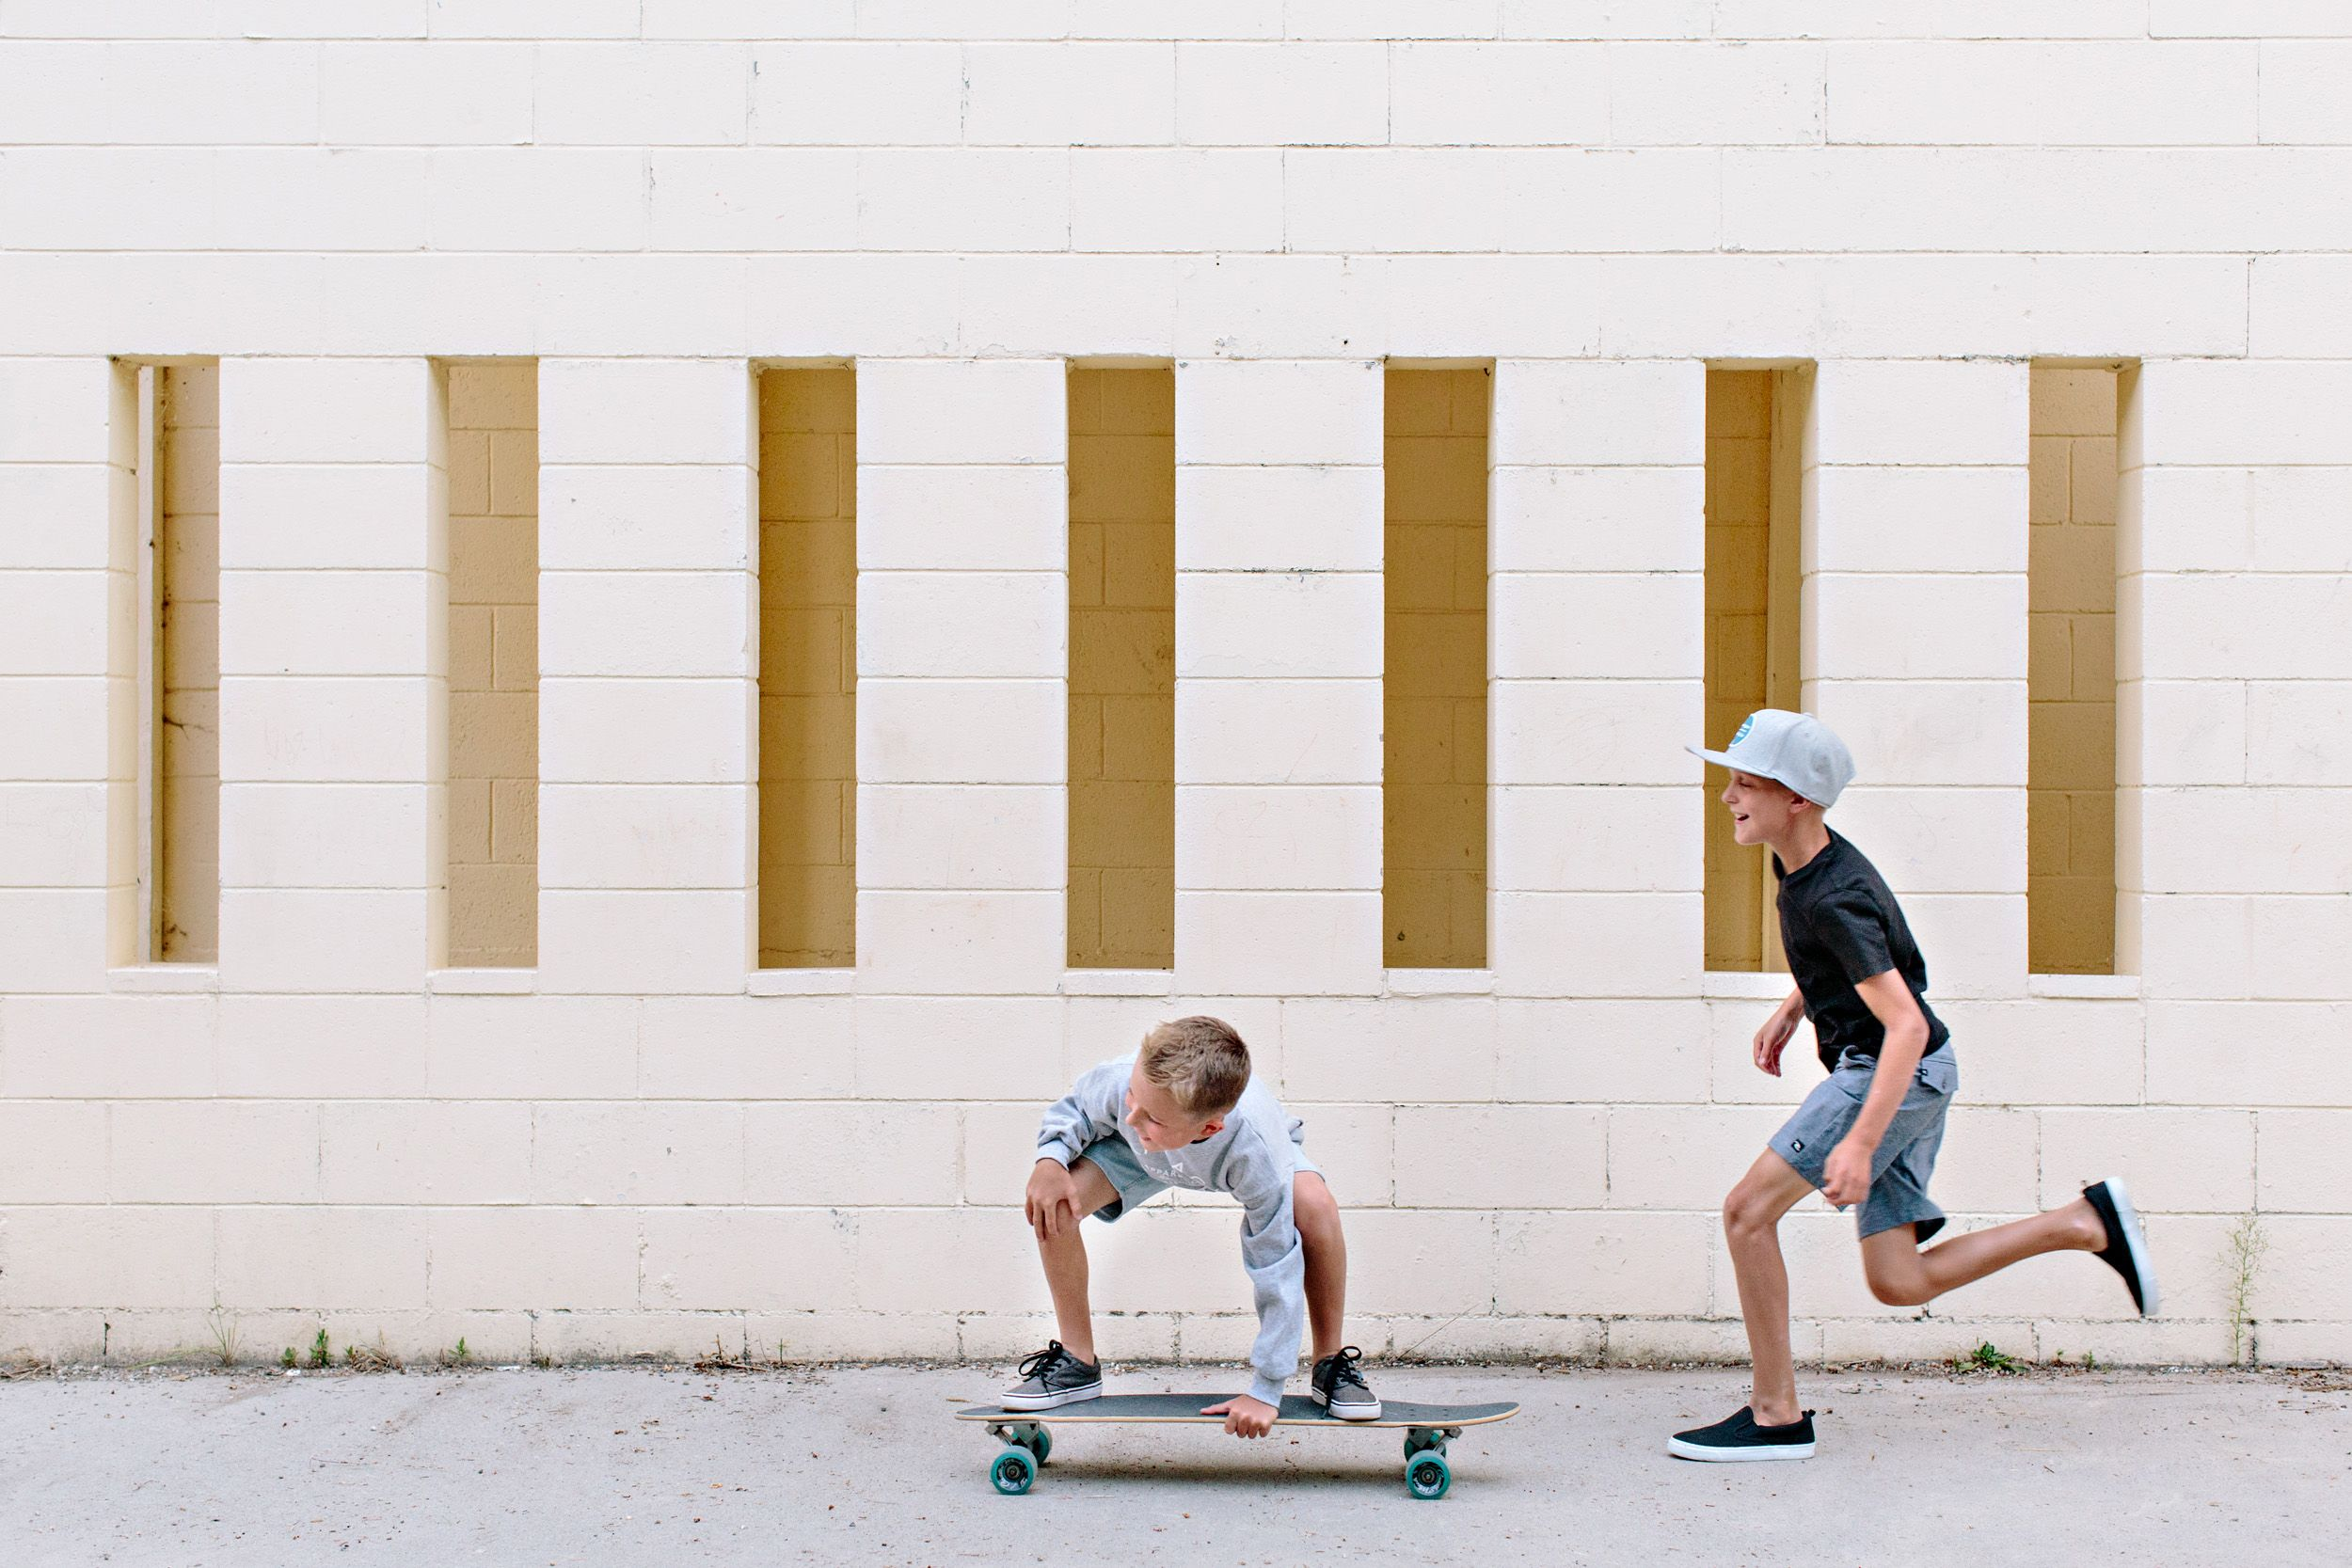 boys skateboarding and running